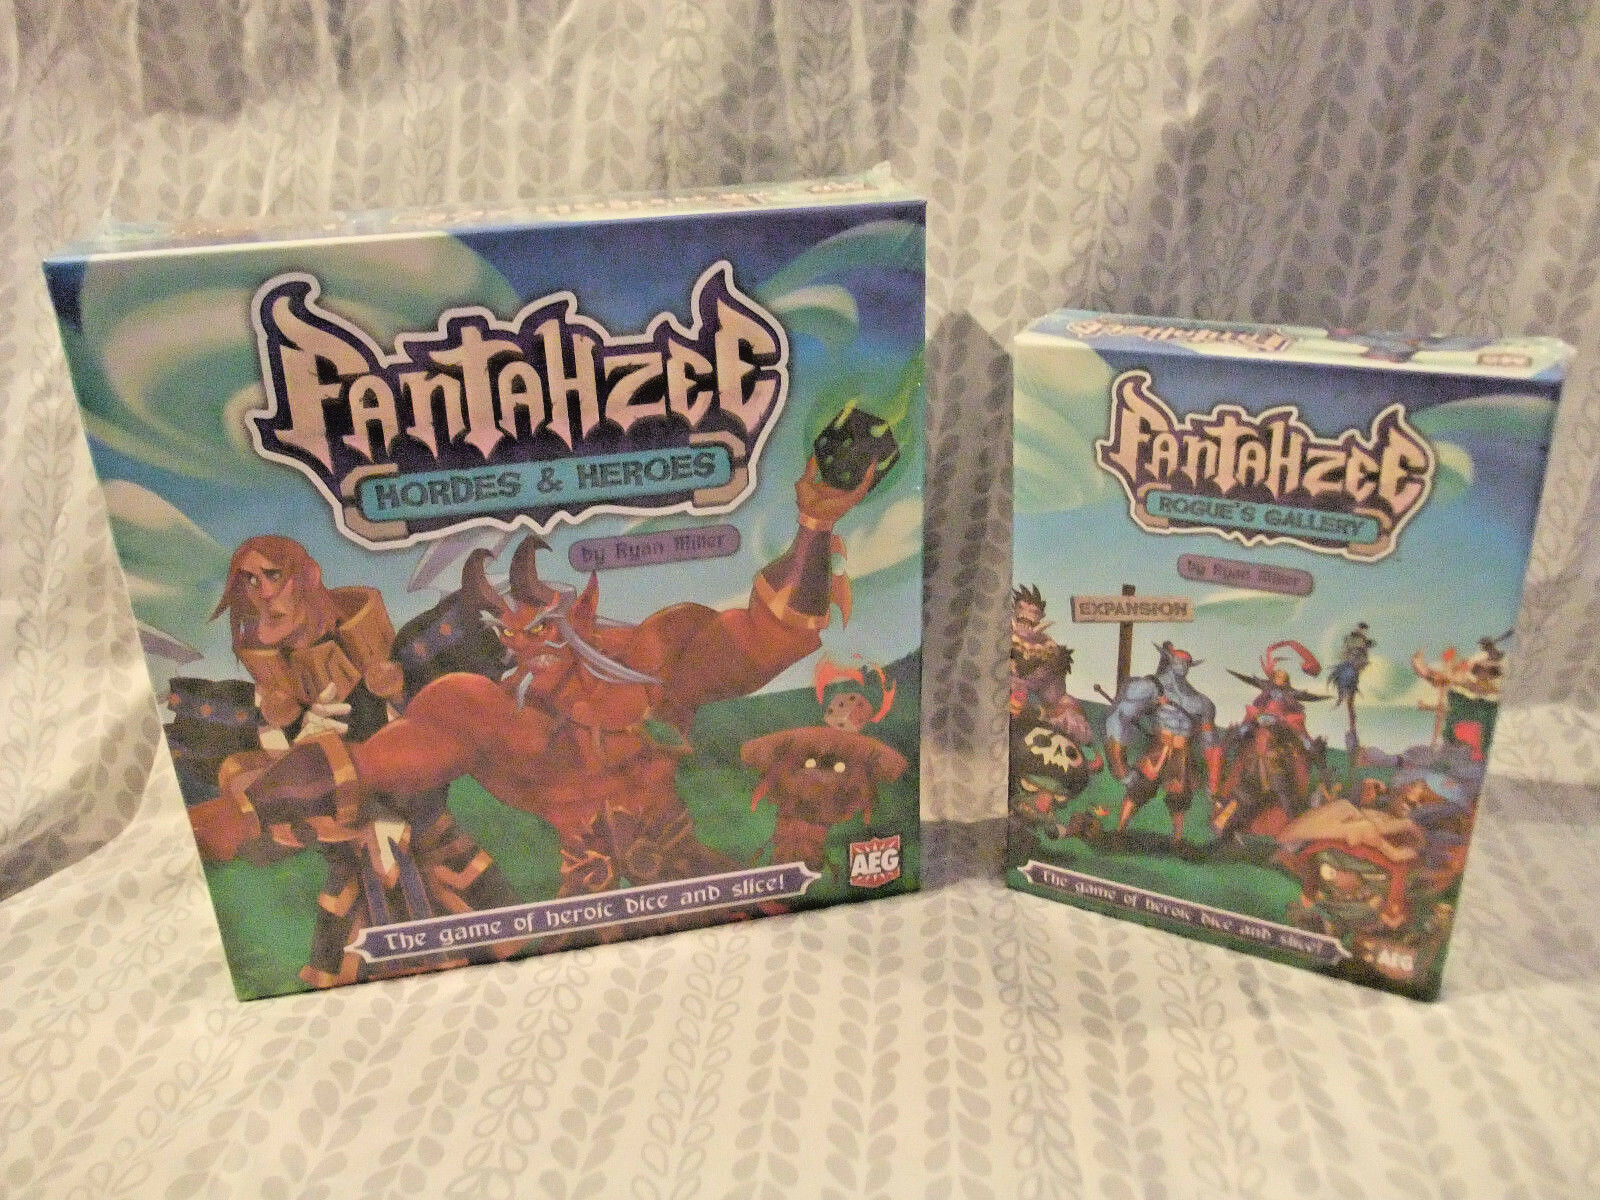 Fantahzee autod e Dice gioco  Hordes e Heroes + Rogues Gtuttiery Expansion by AEG  spedizione veloce a te